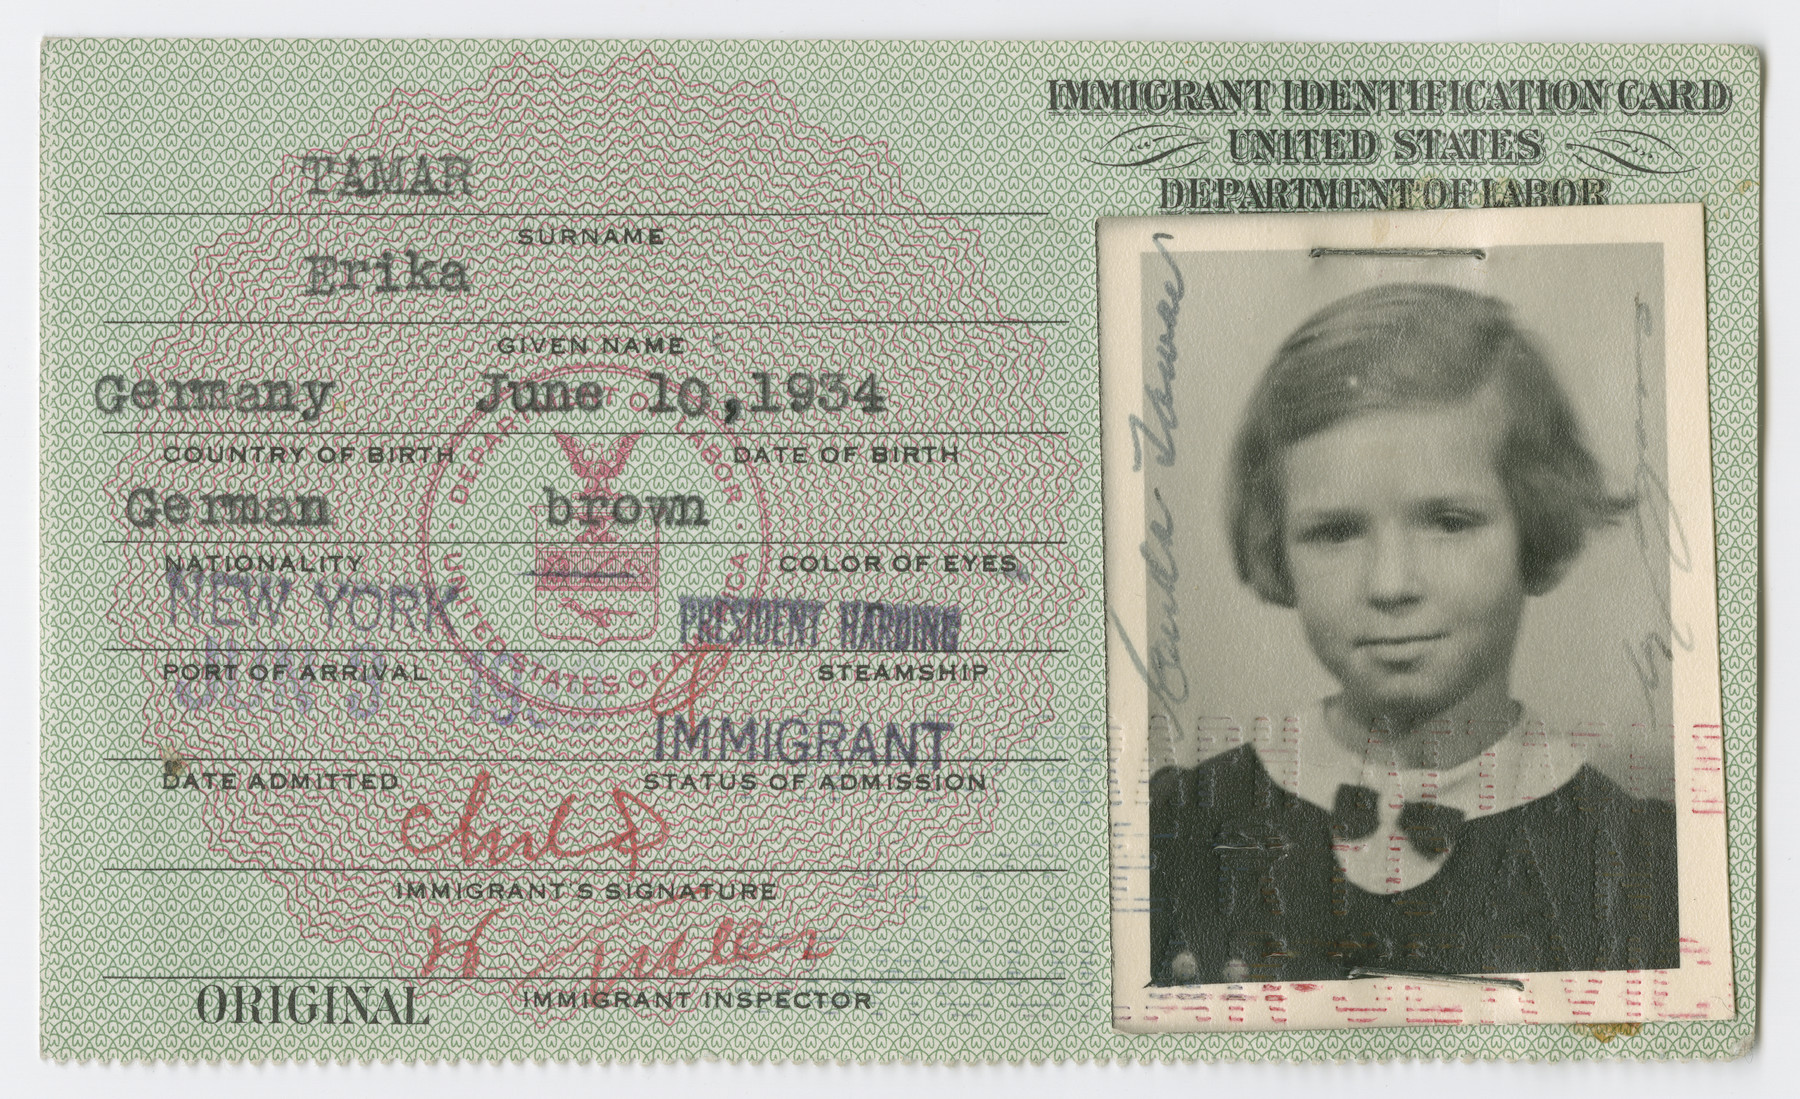 United States Immigrant Identification Card issued to Erika Tamar.  It states she was born in Germany though she was born in Vienna.